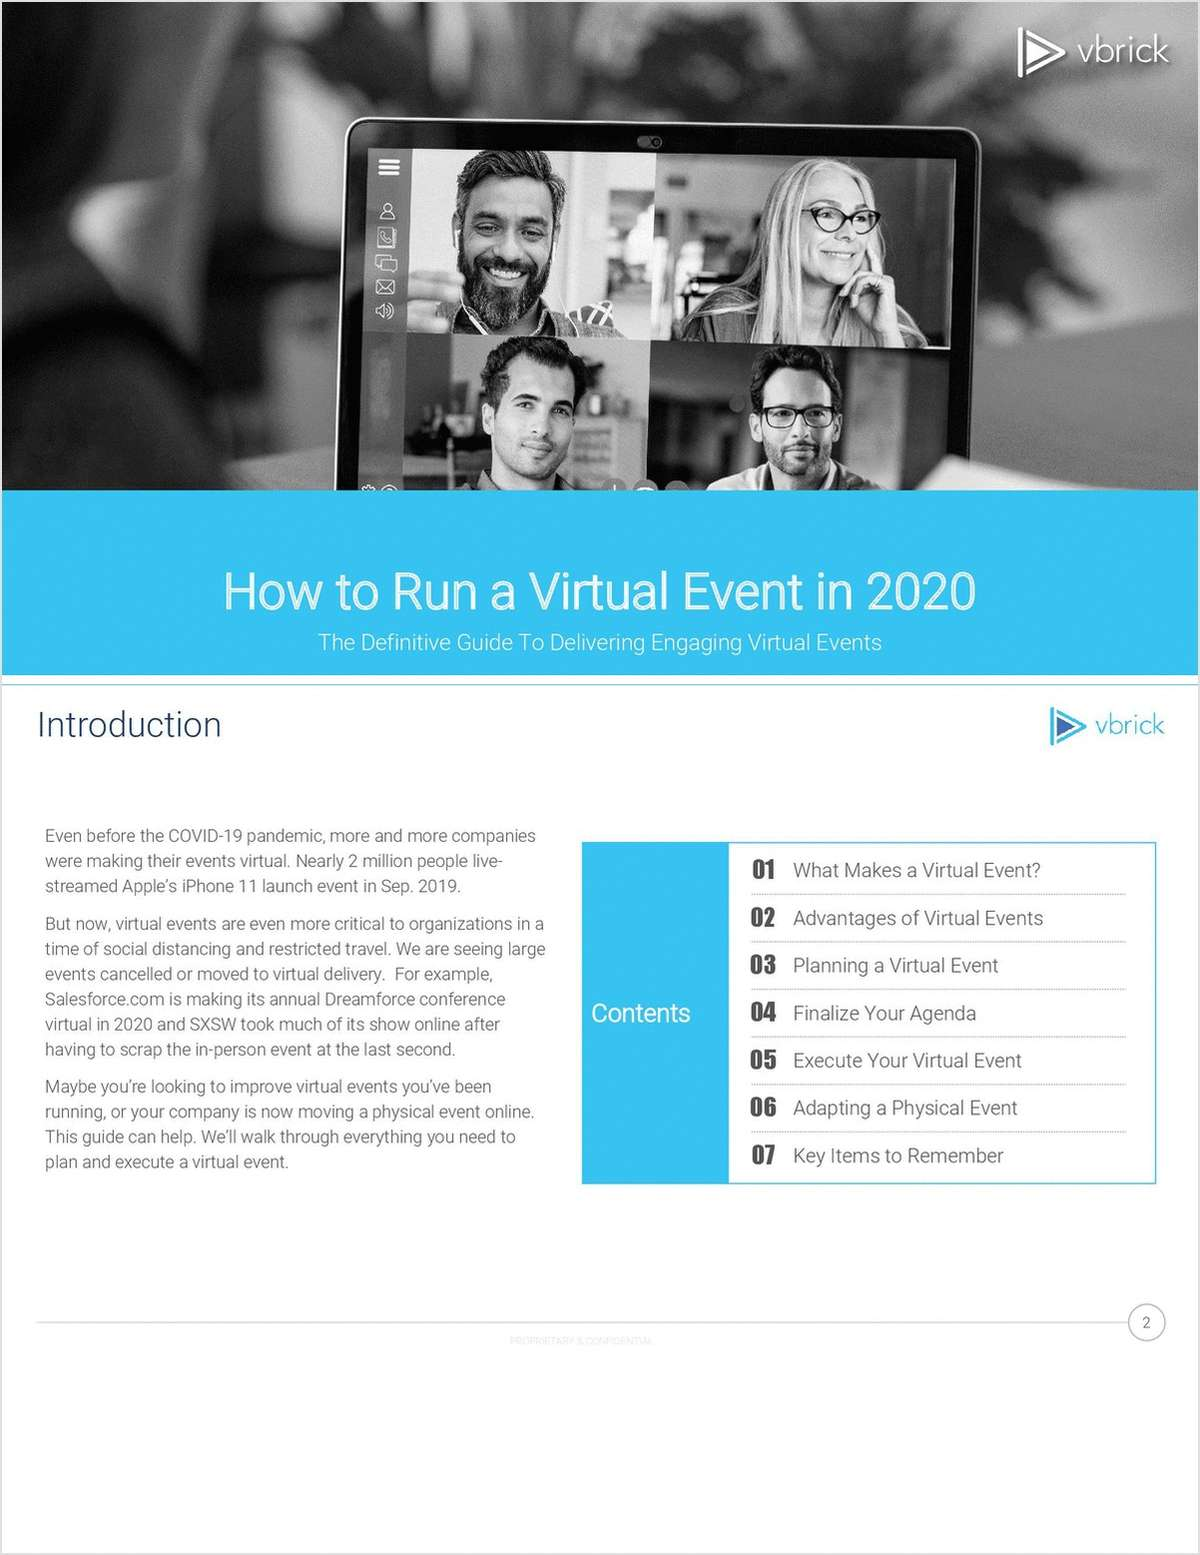 How to Run a Virtual Event in 2020